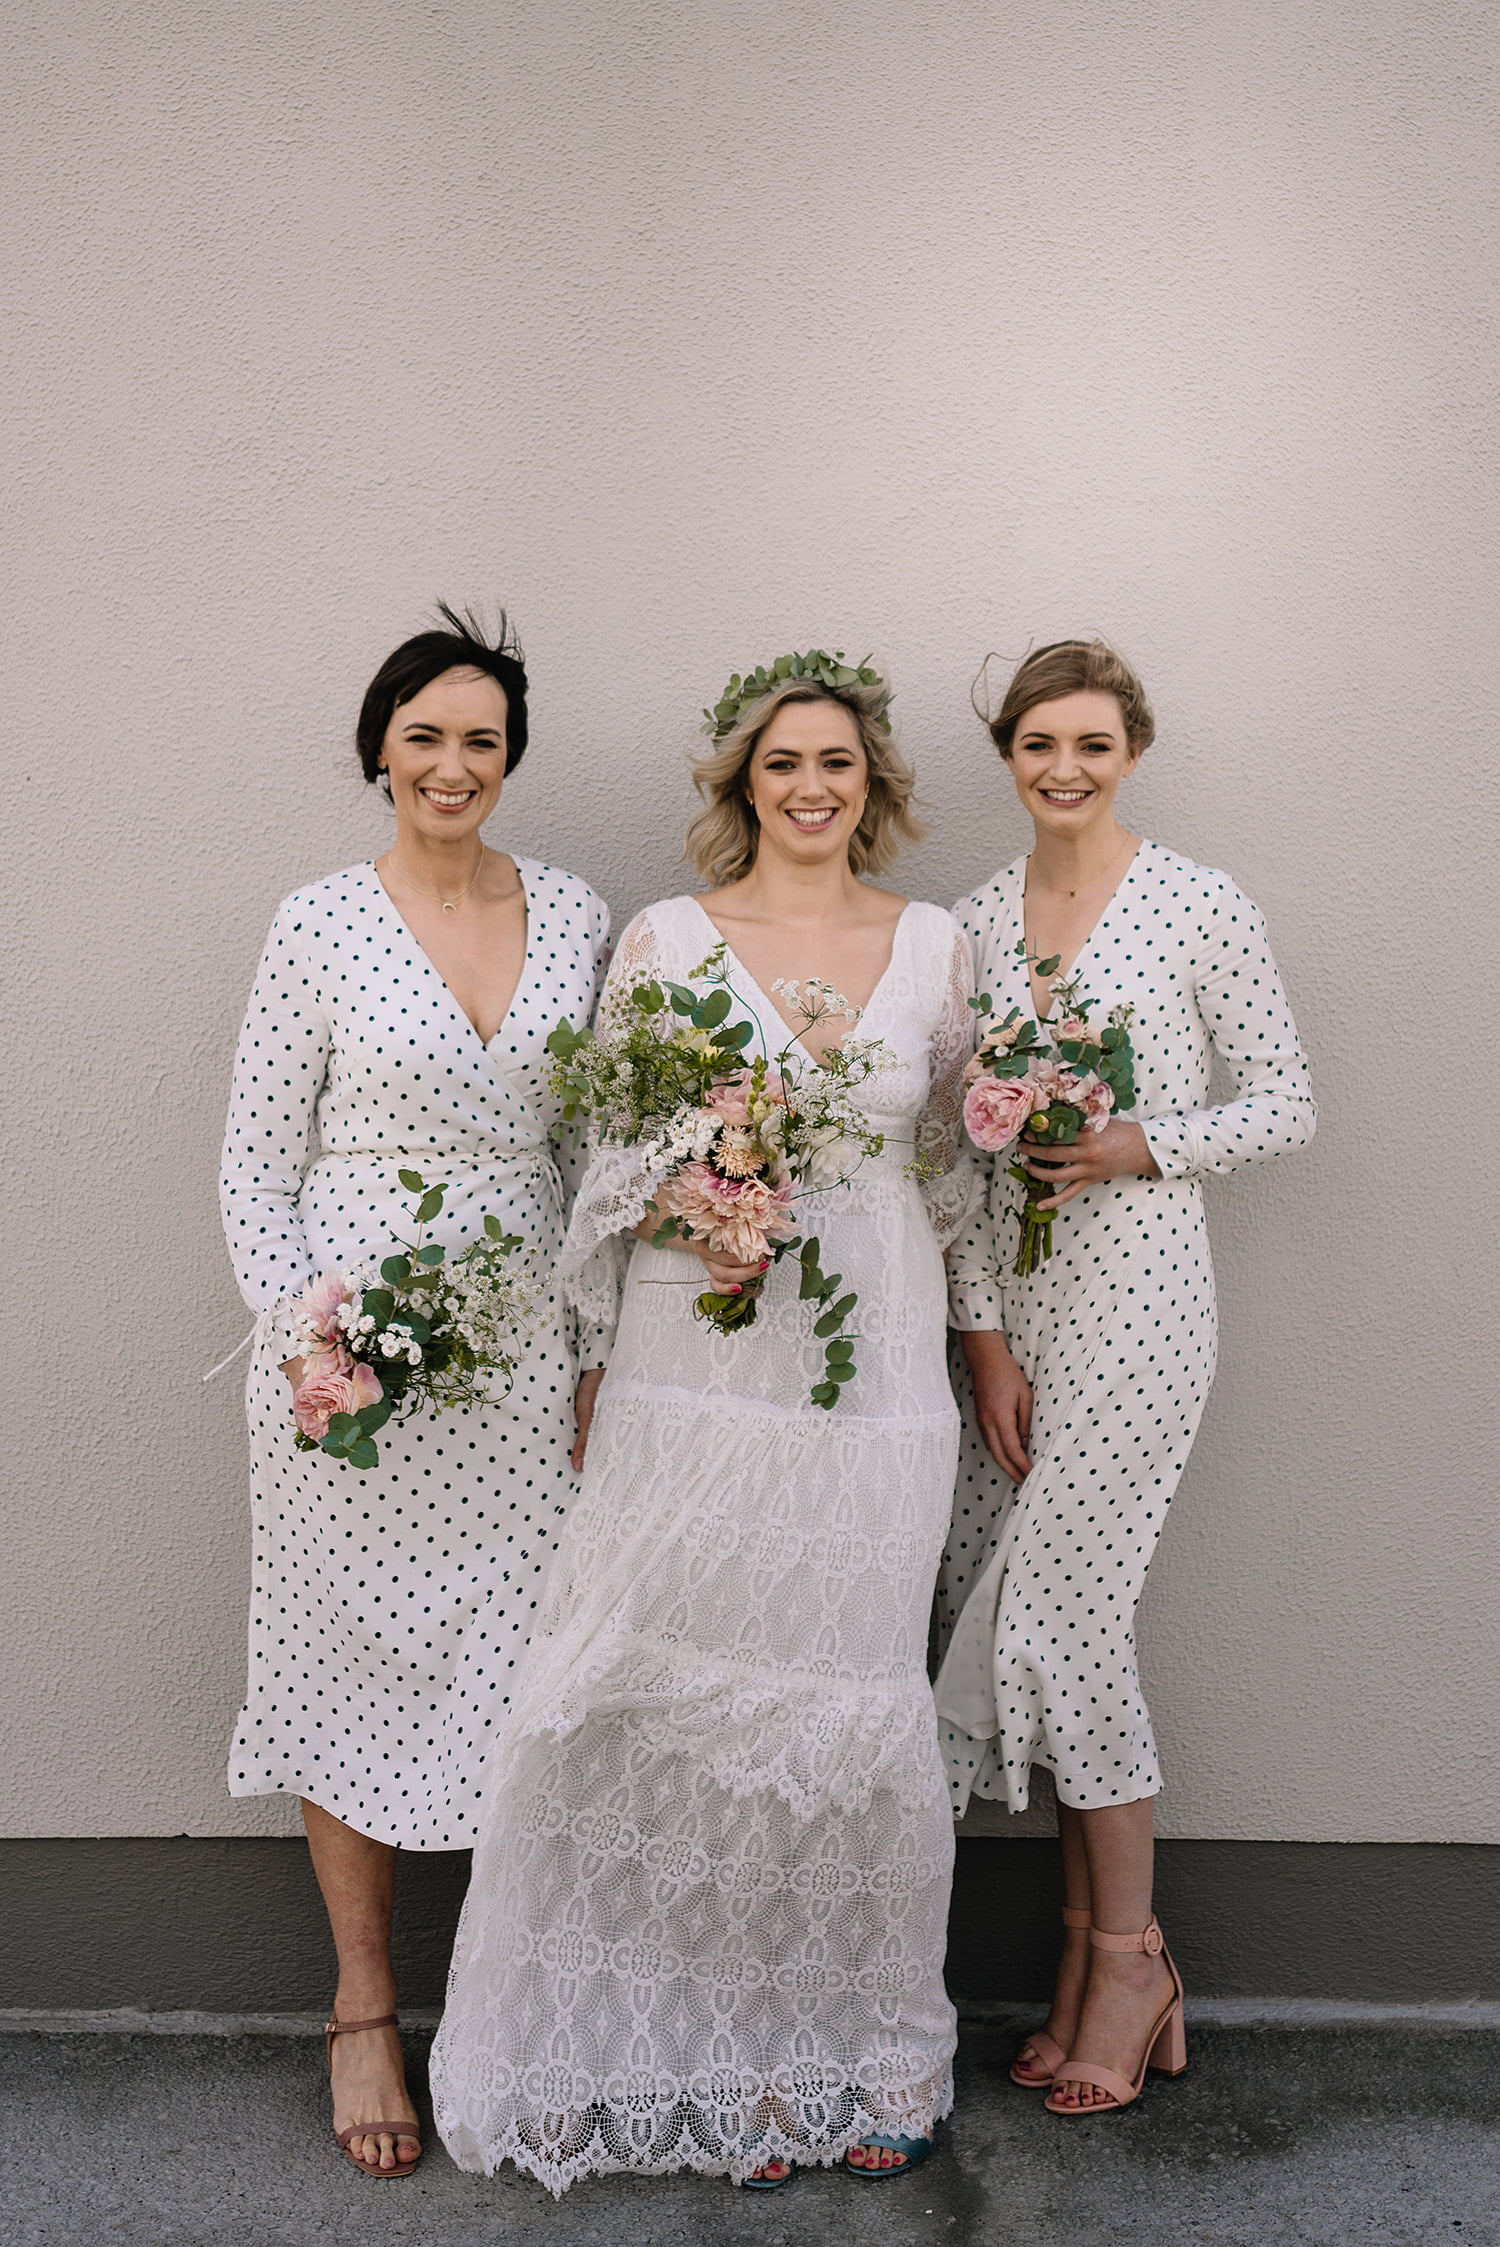 Trends and Tips for Choosing Bridesmaids Dresses